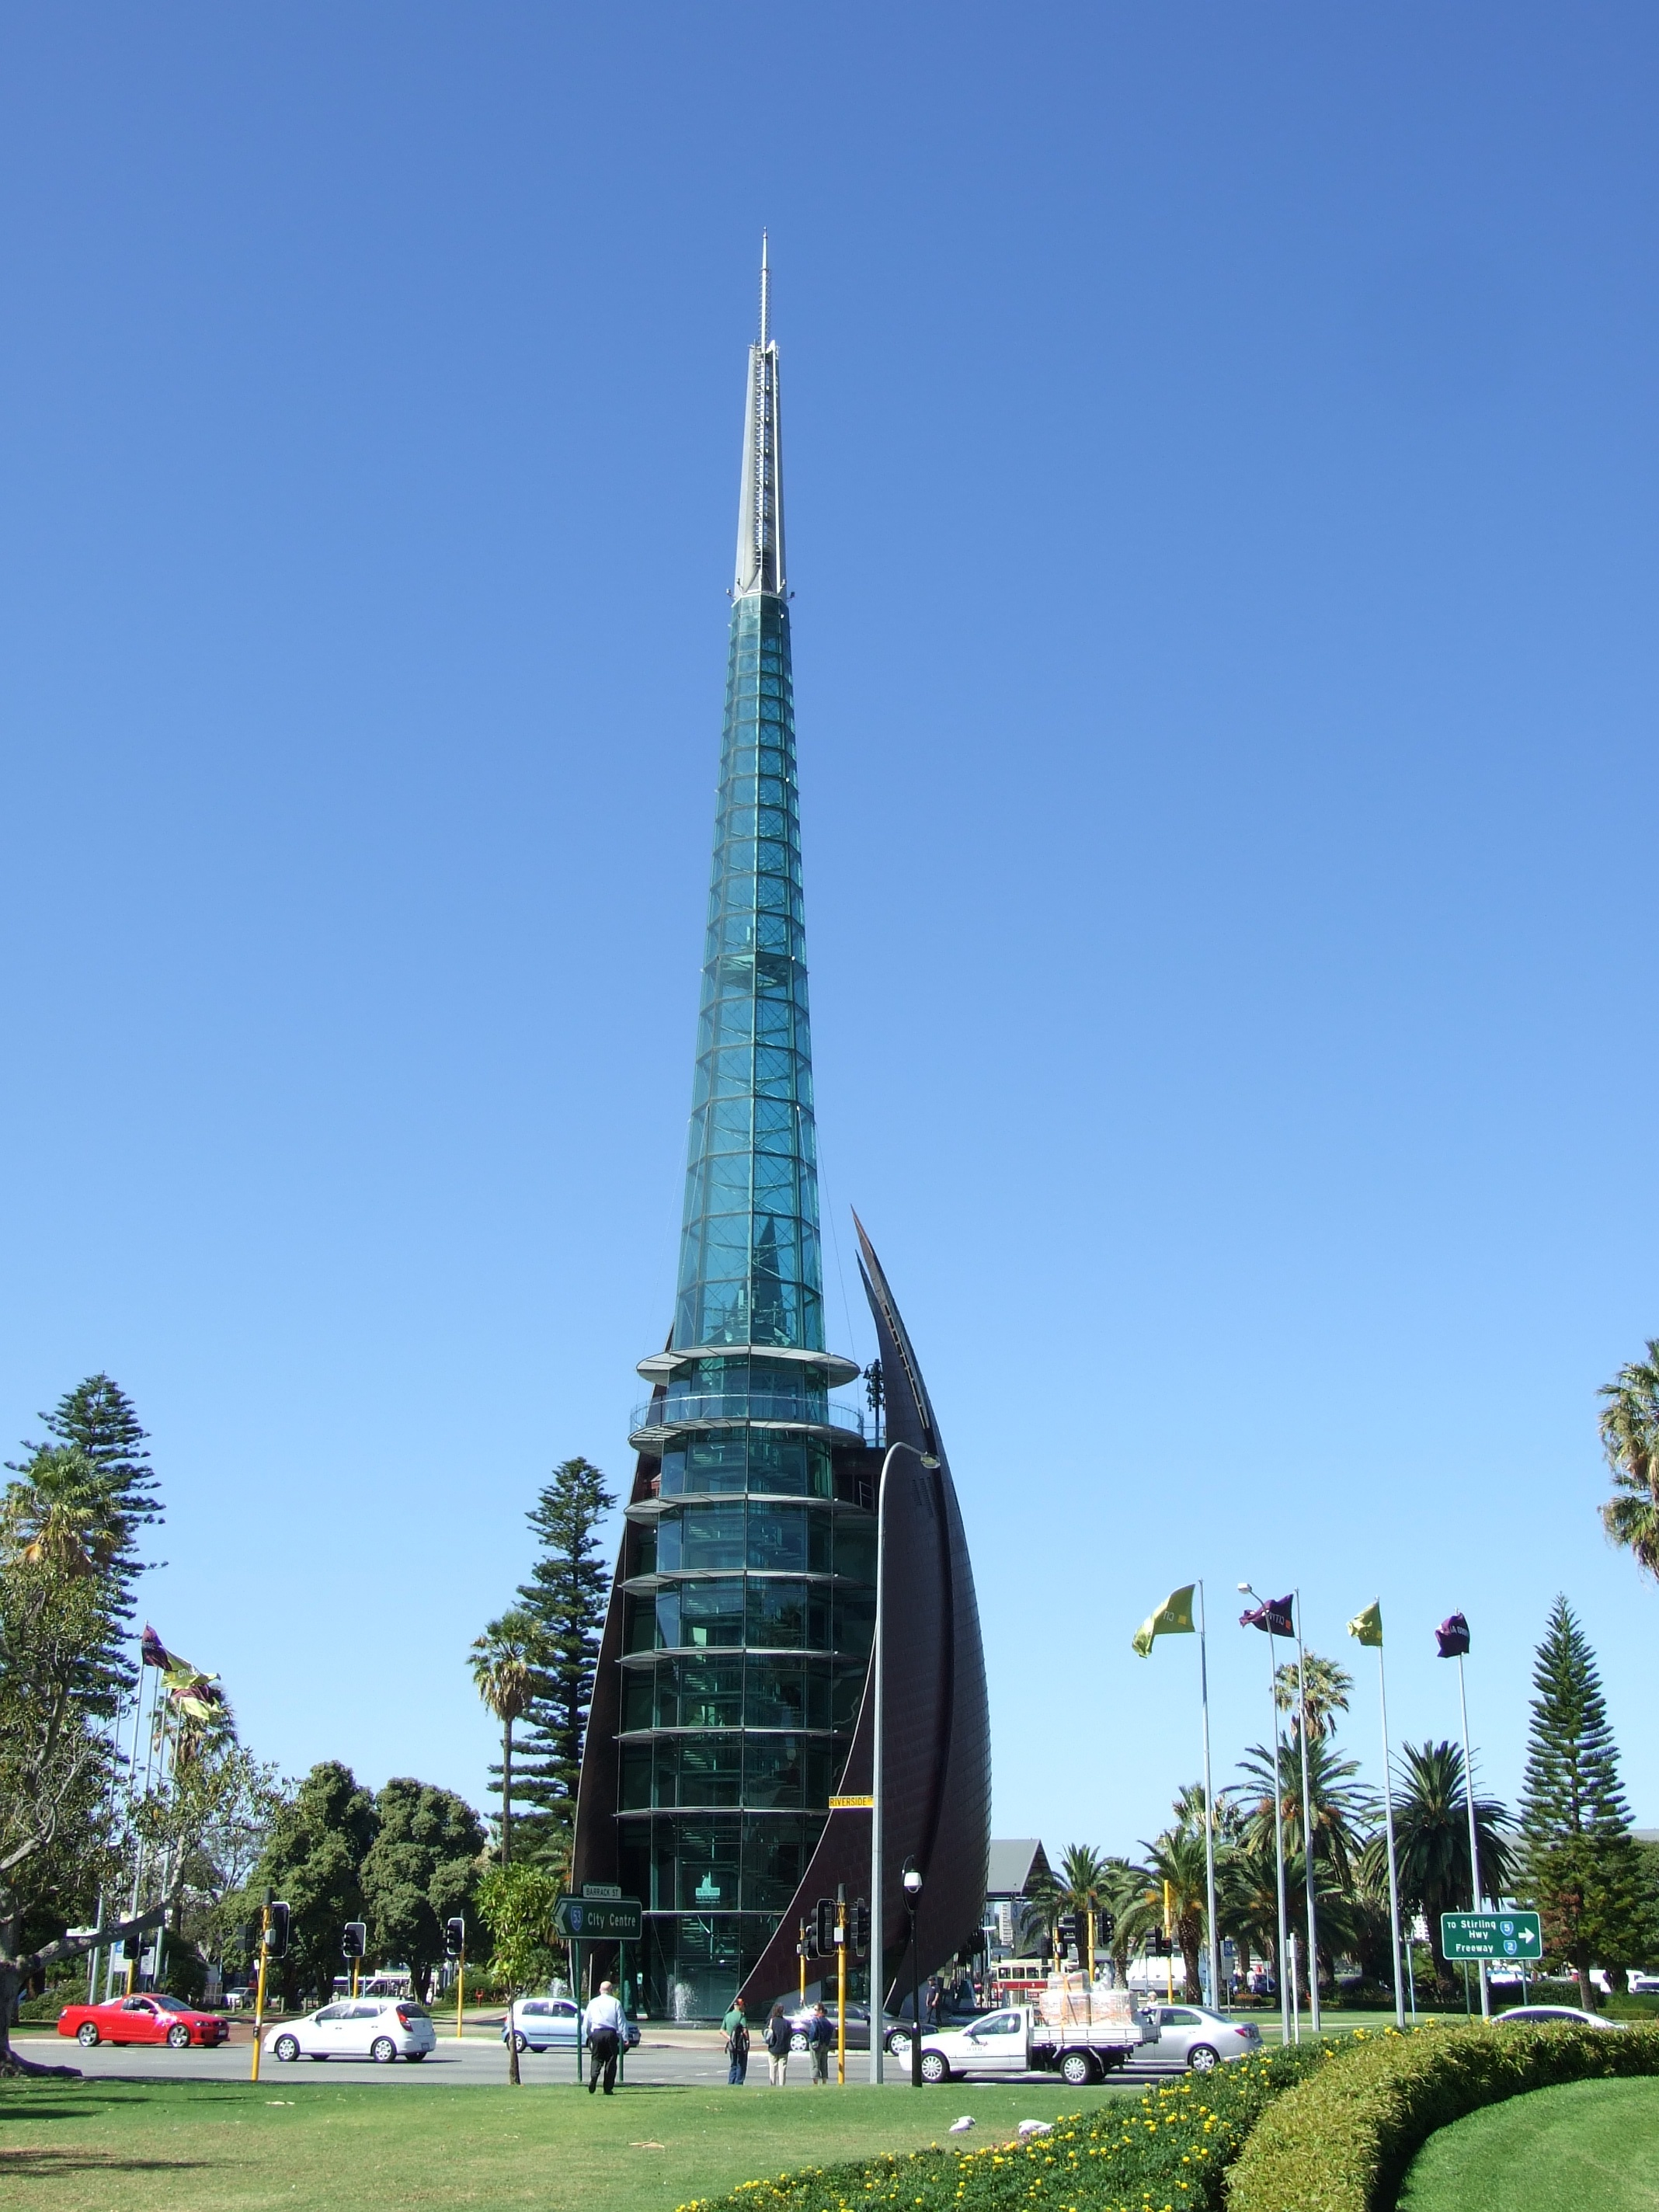 File:Swan Bell Tower - Perth (2009).jpg - Wikimedia Commons